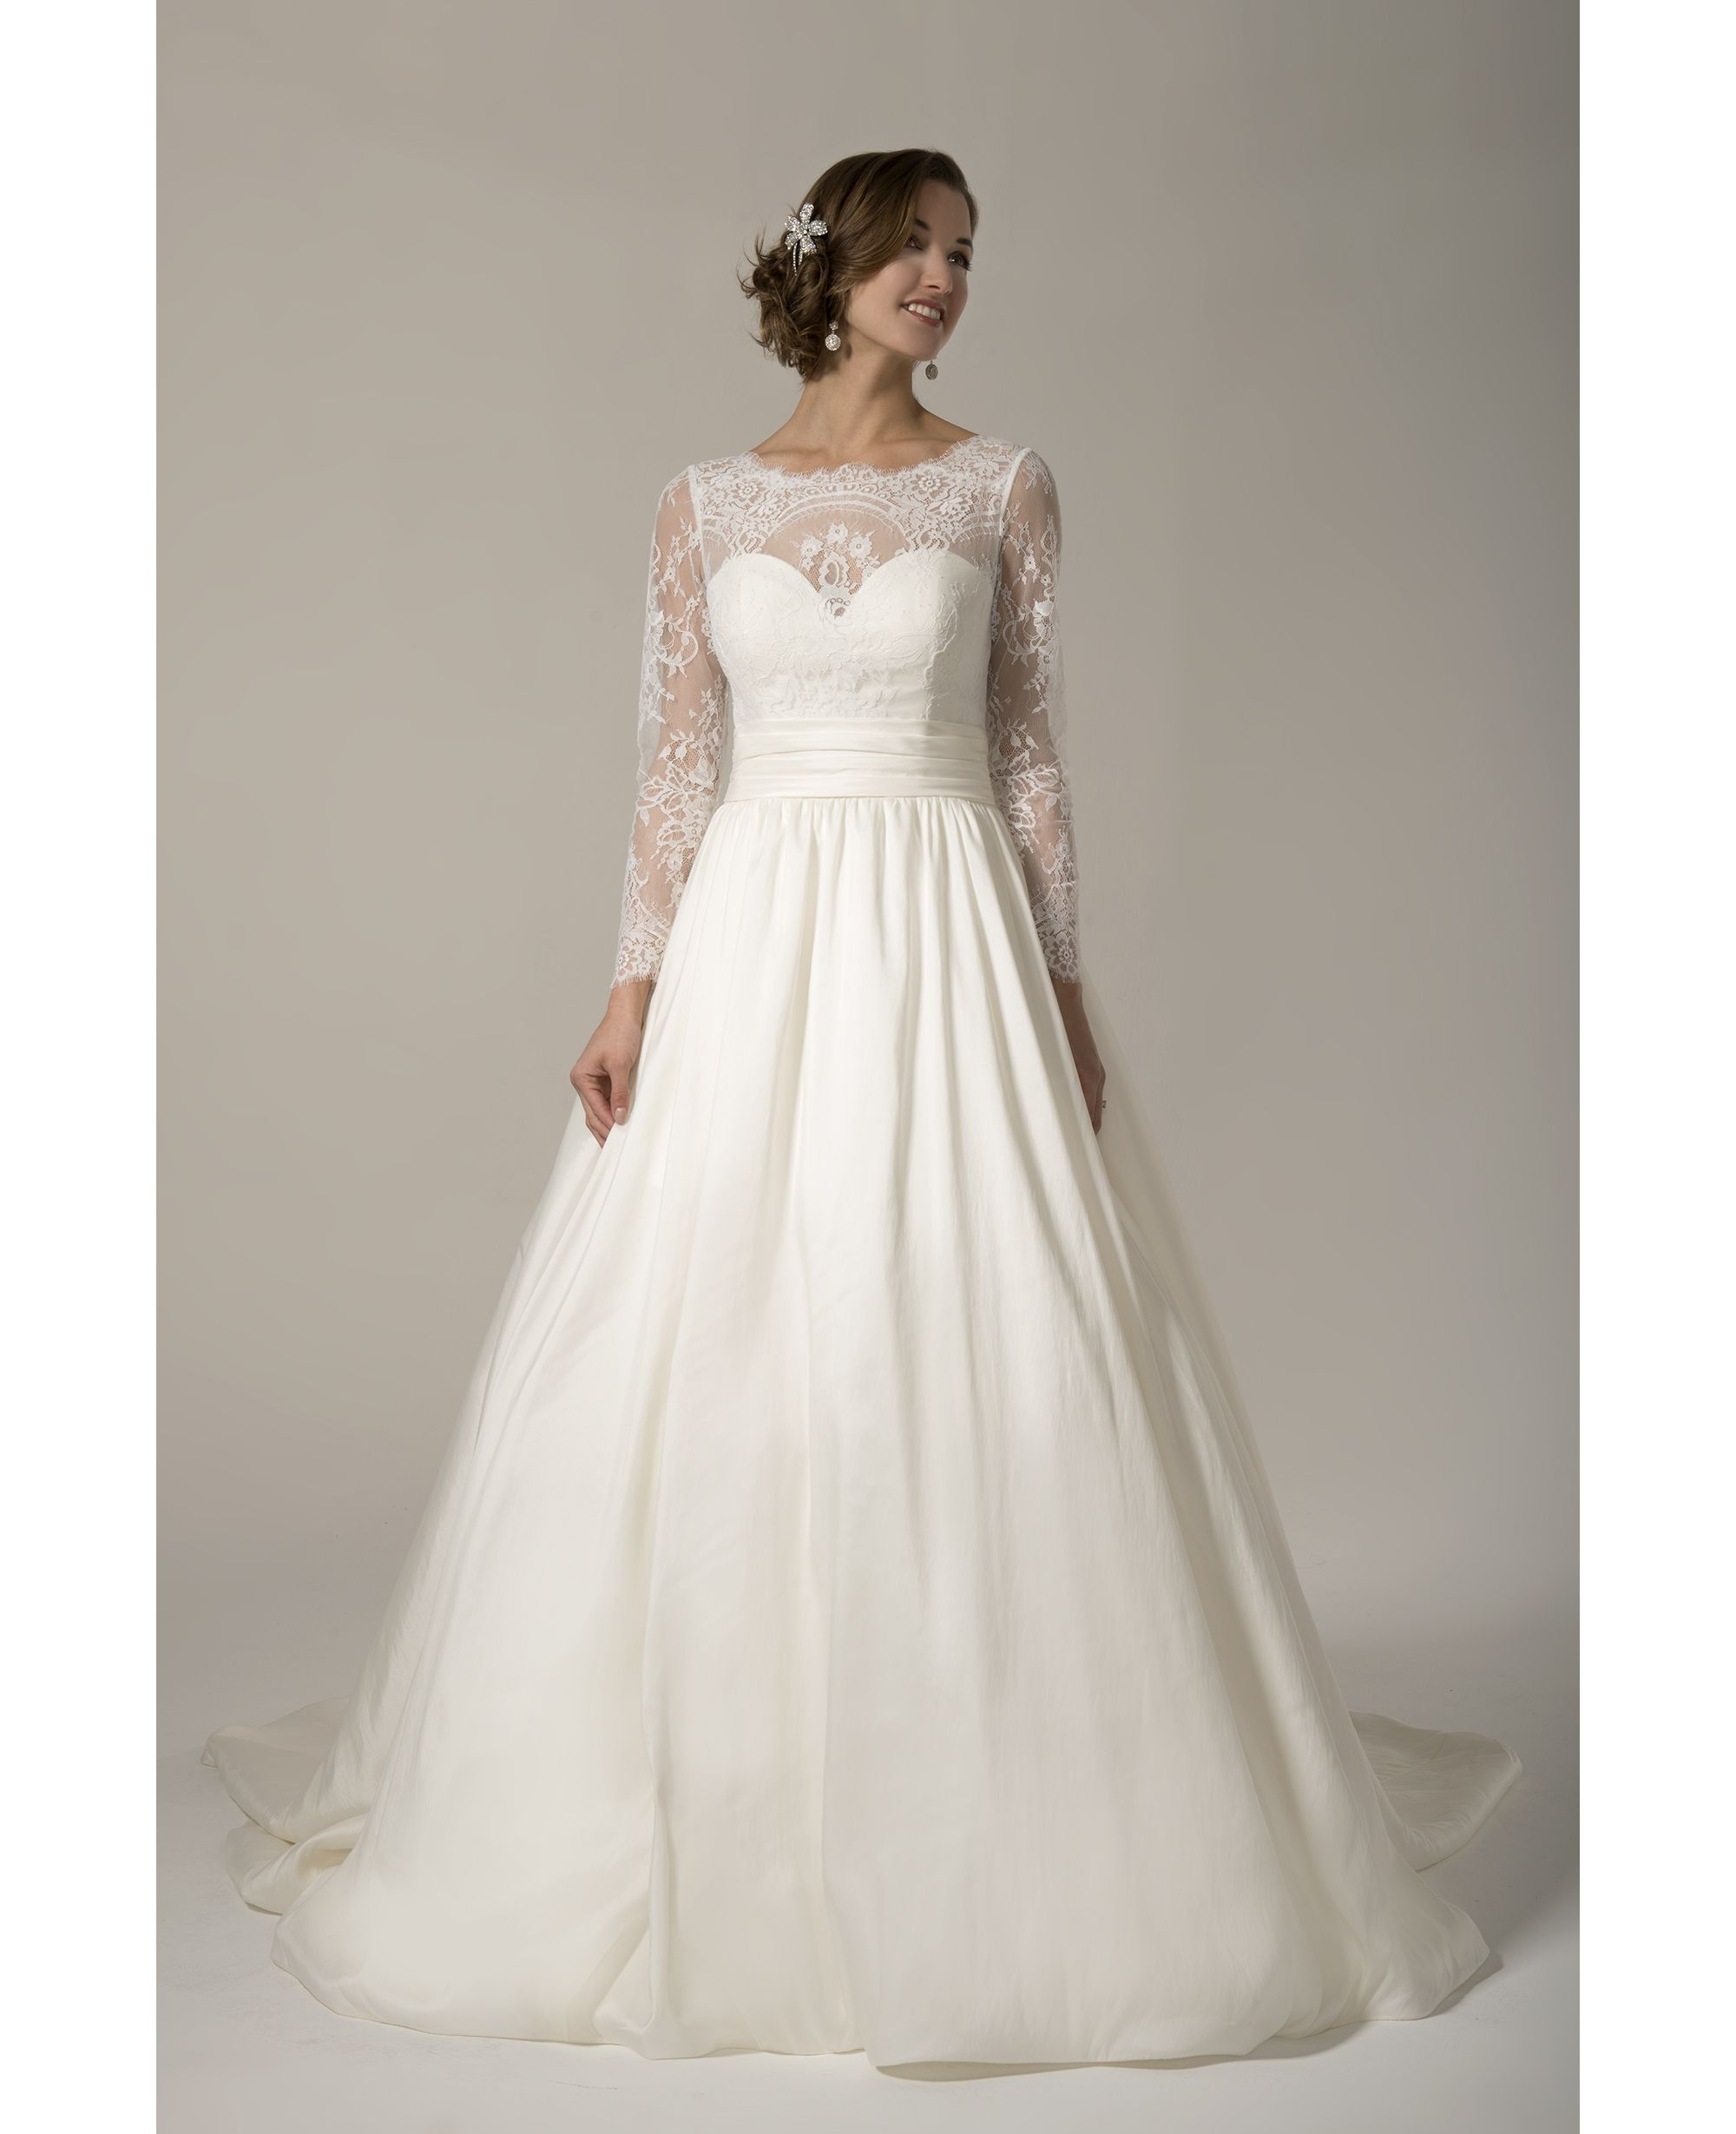 Venus Style TB7736. Available @ Low's Bridal.